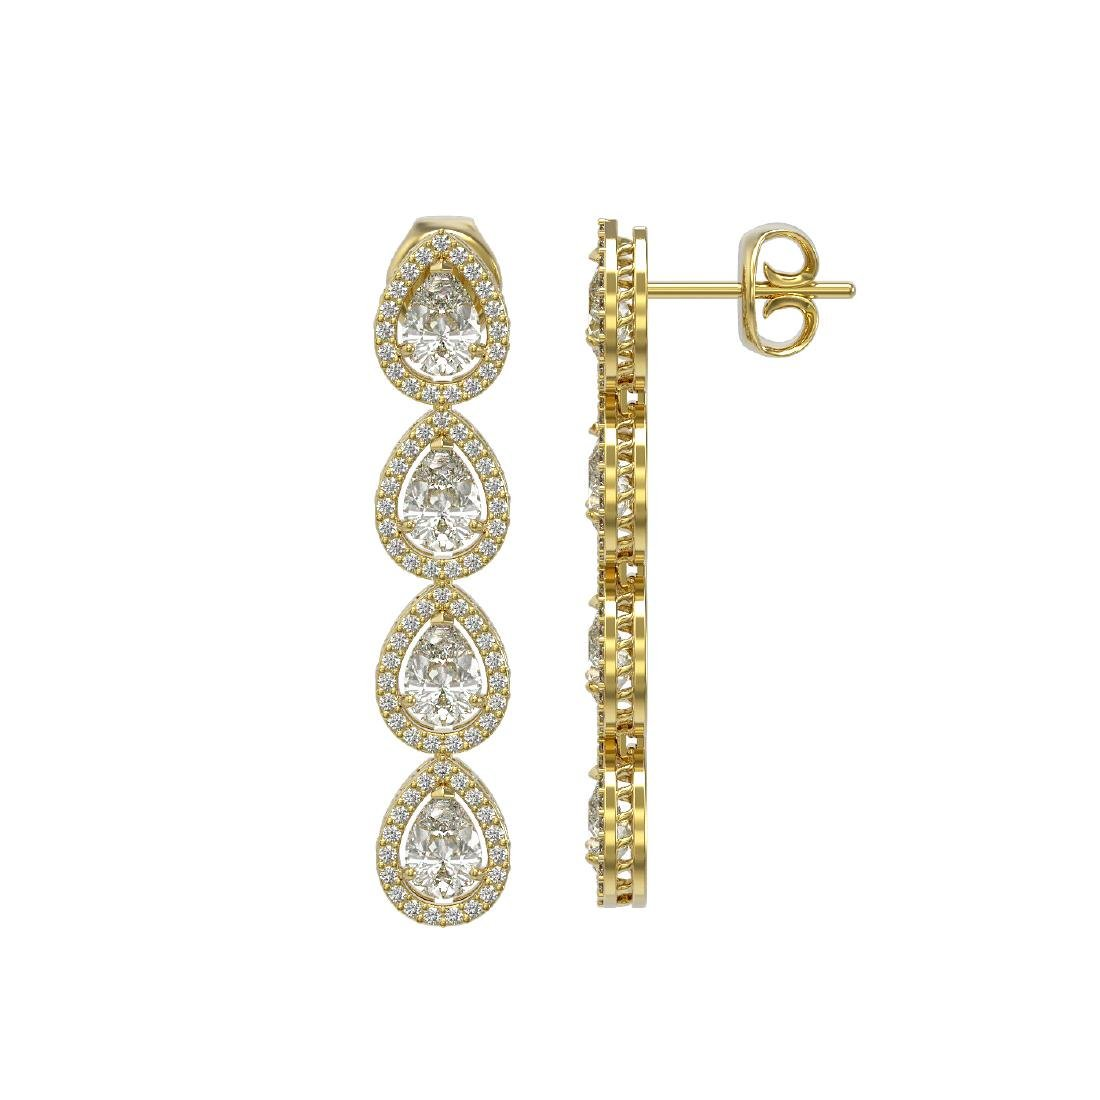 6.01 CTW Pear Diamond Designer Earrings 18K Yellow Gold - 2